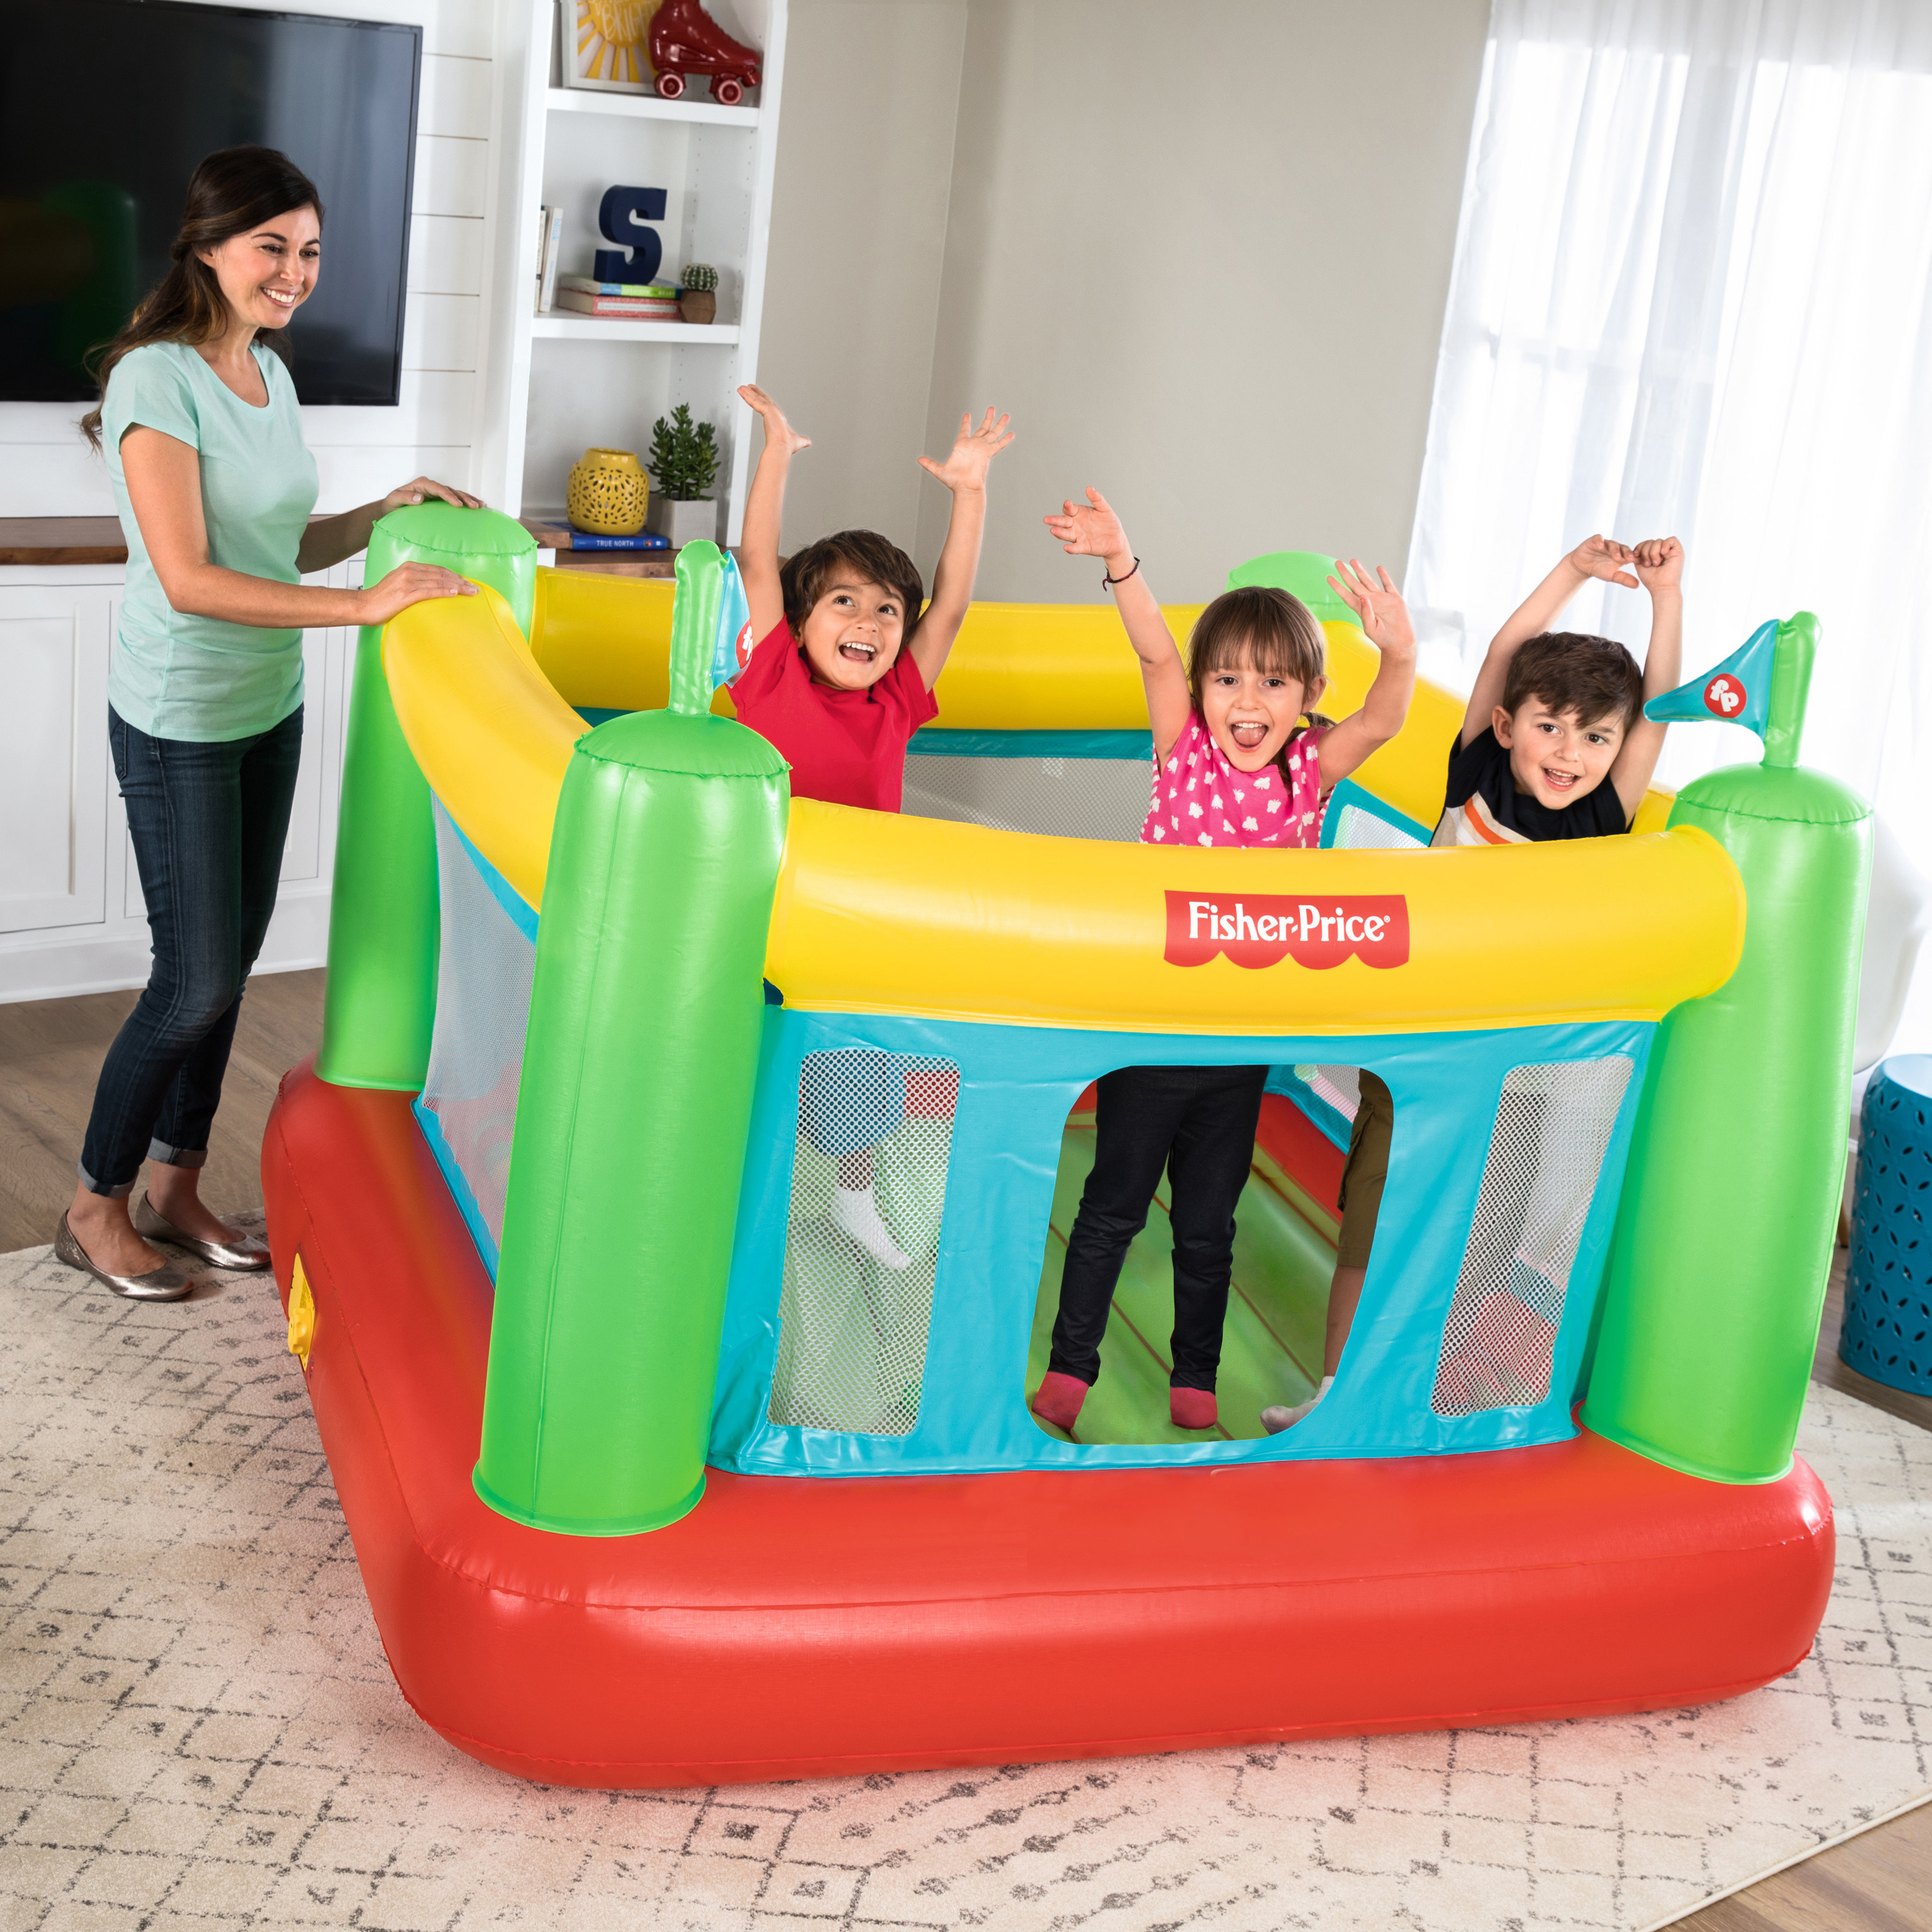 The bounce house, which has one small entry area, mesh sides, and is about the height of the child's shoulder once they are inside